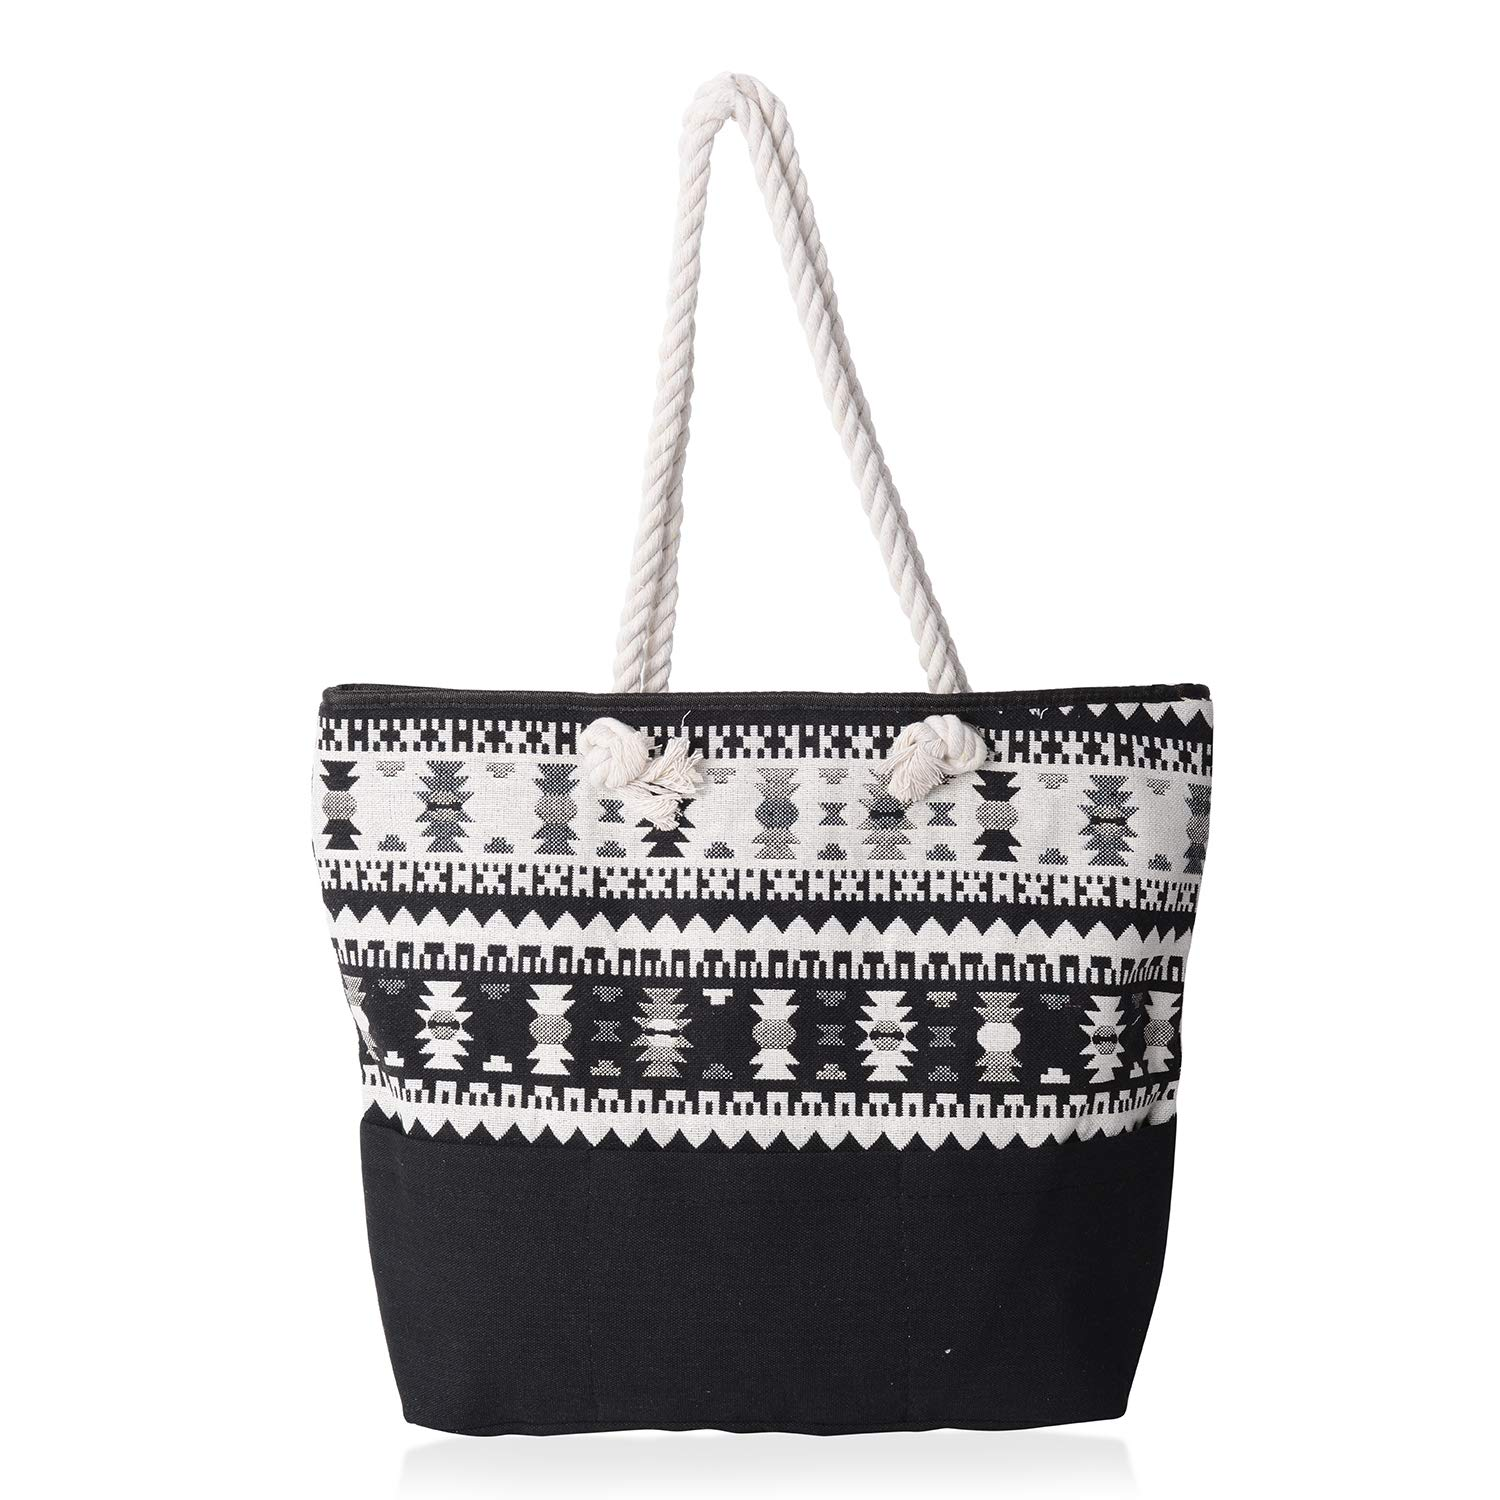 Black and White 100% Polyester Jacquard Tote Bag 19.2x14.6x15.4